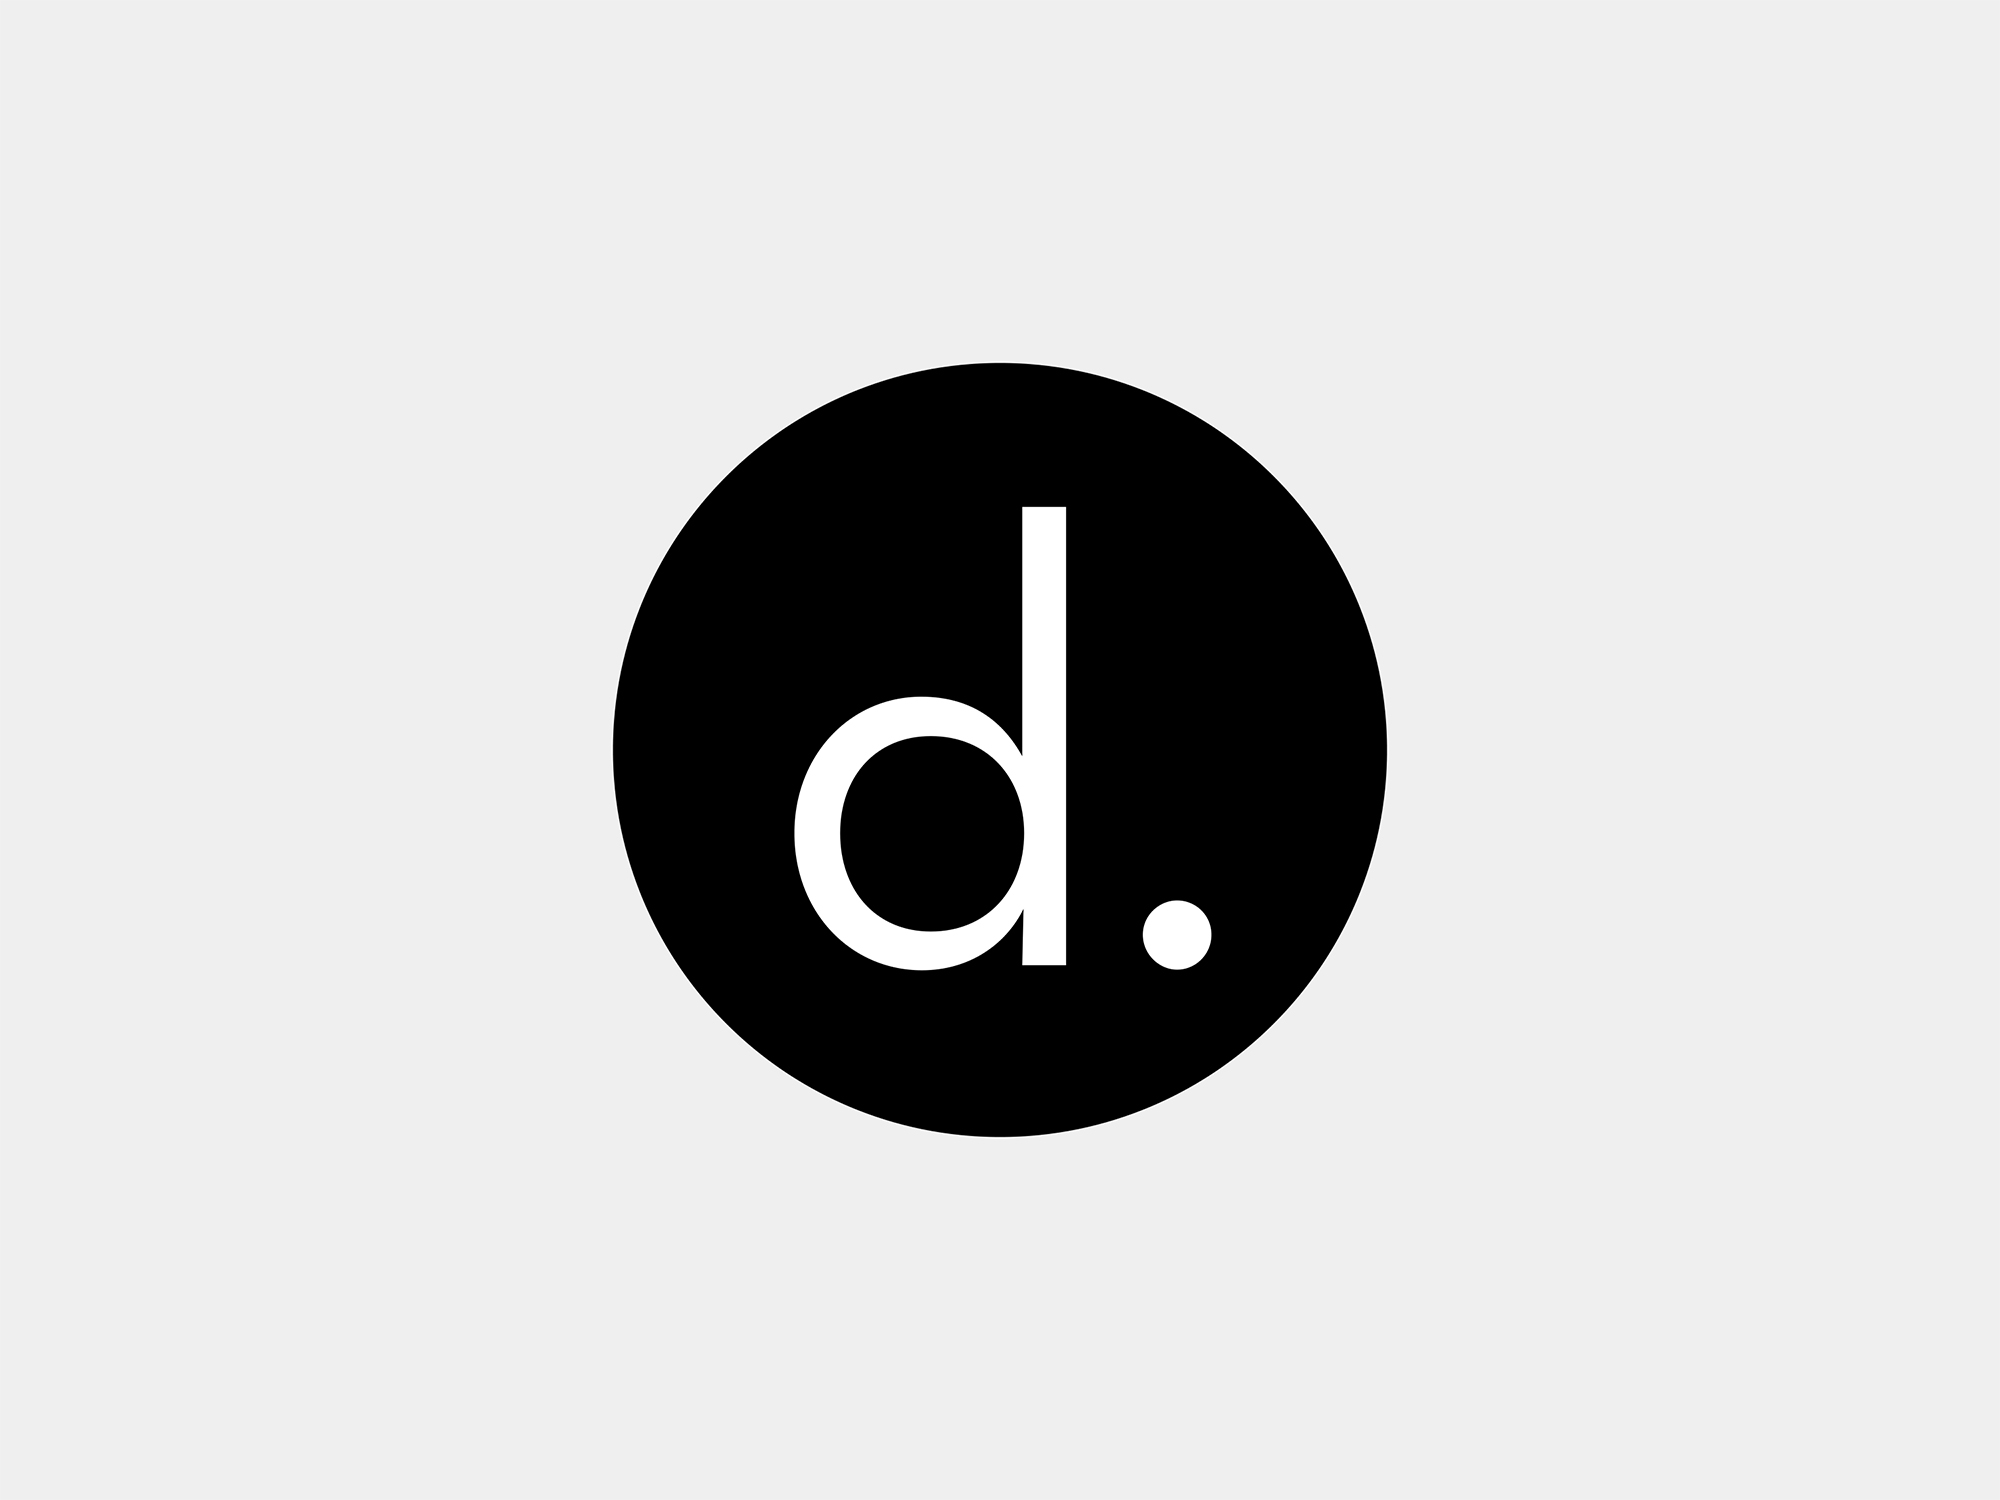 Stanford d.school,  Refined the icon for social media applications.